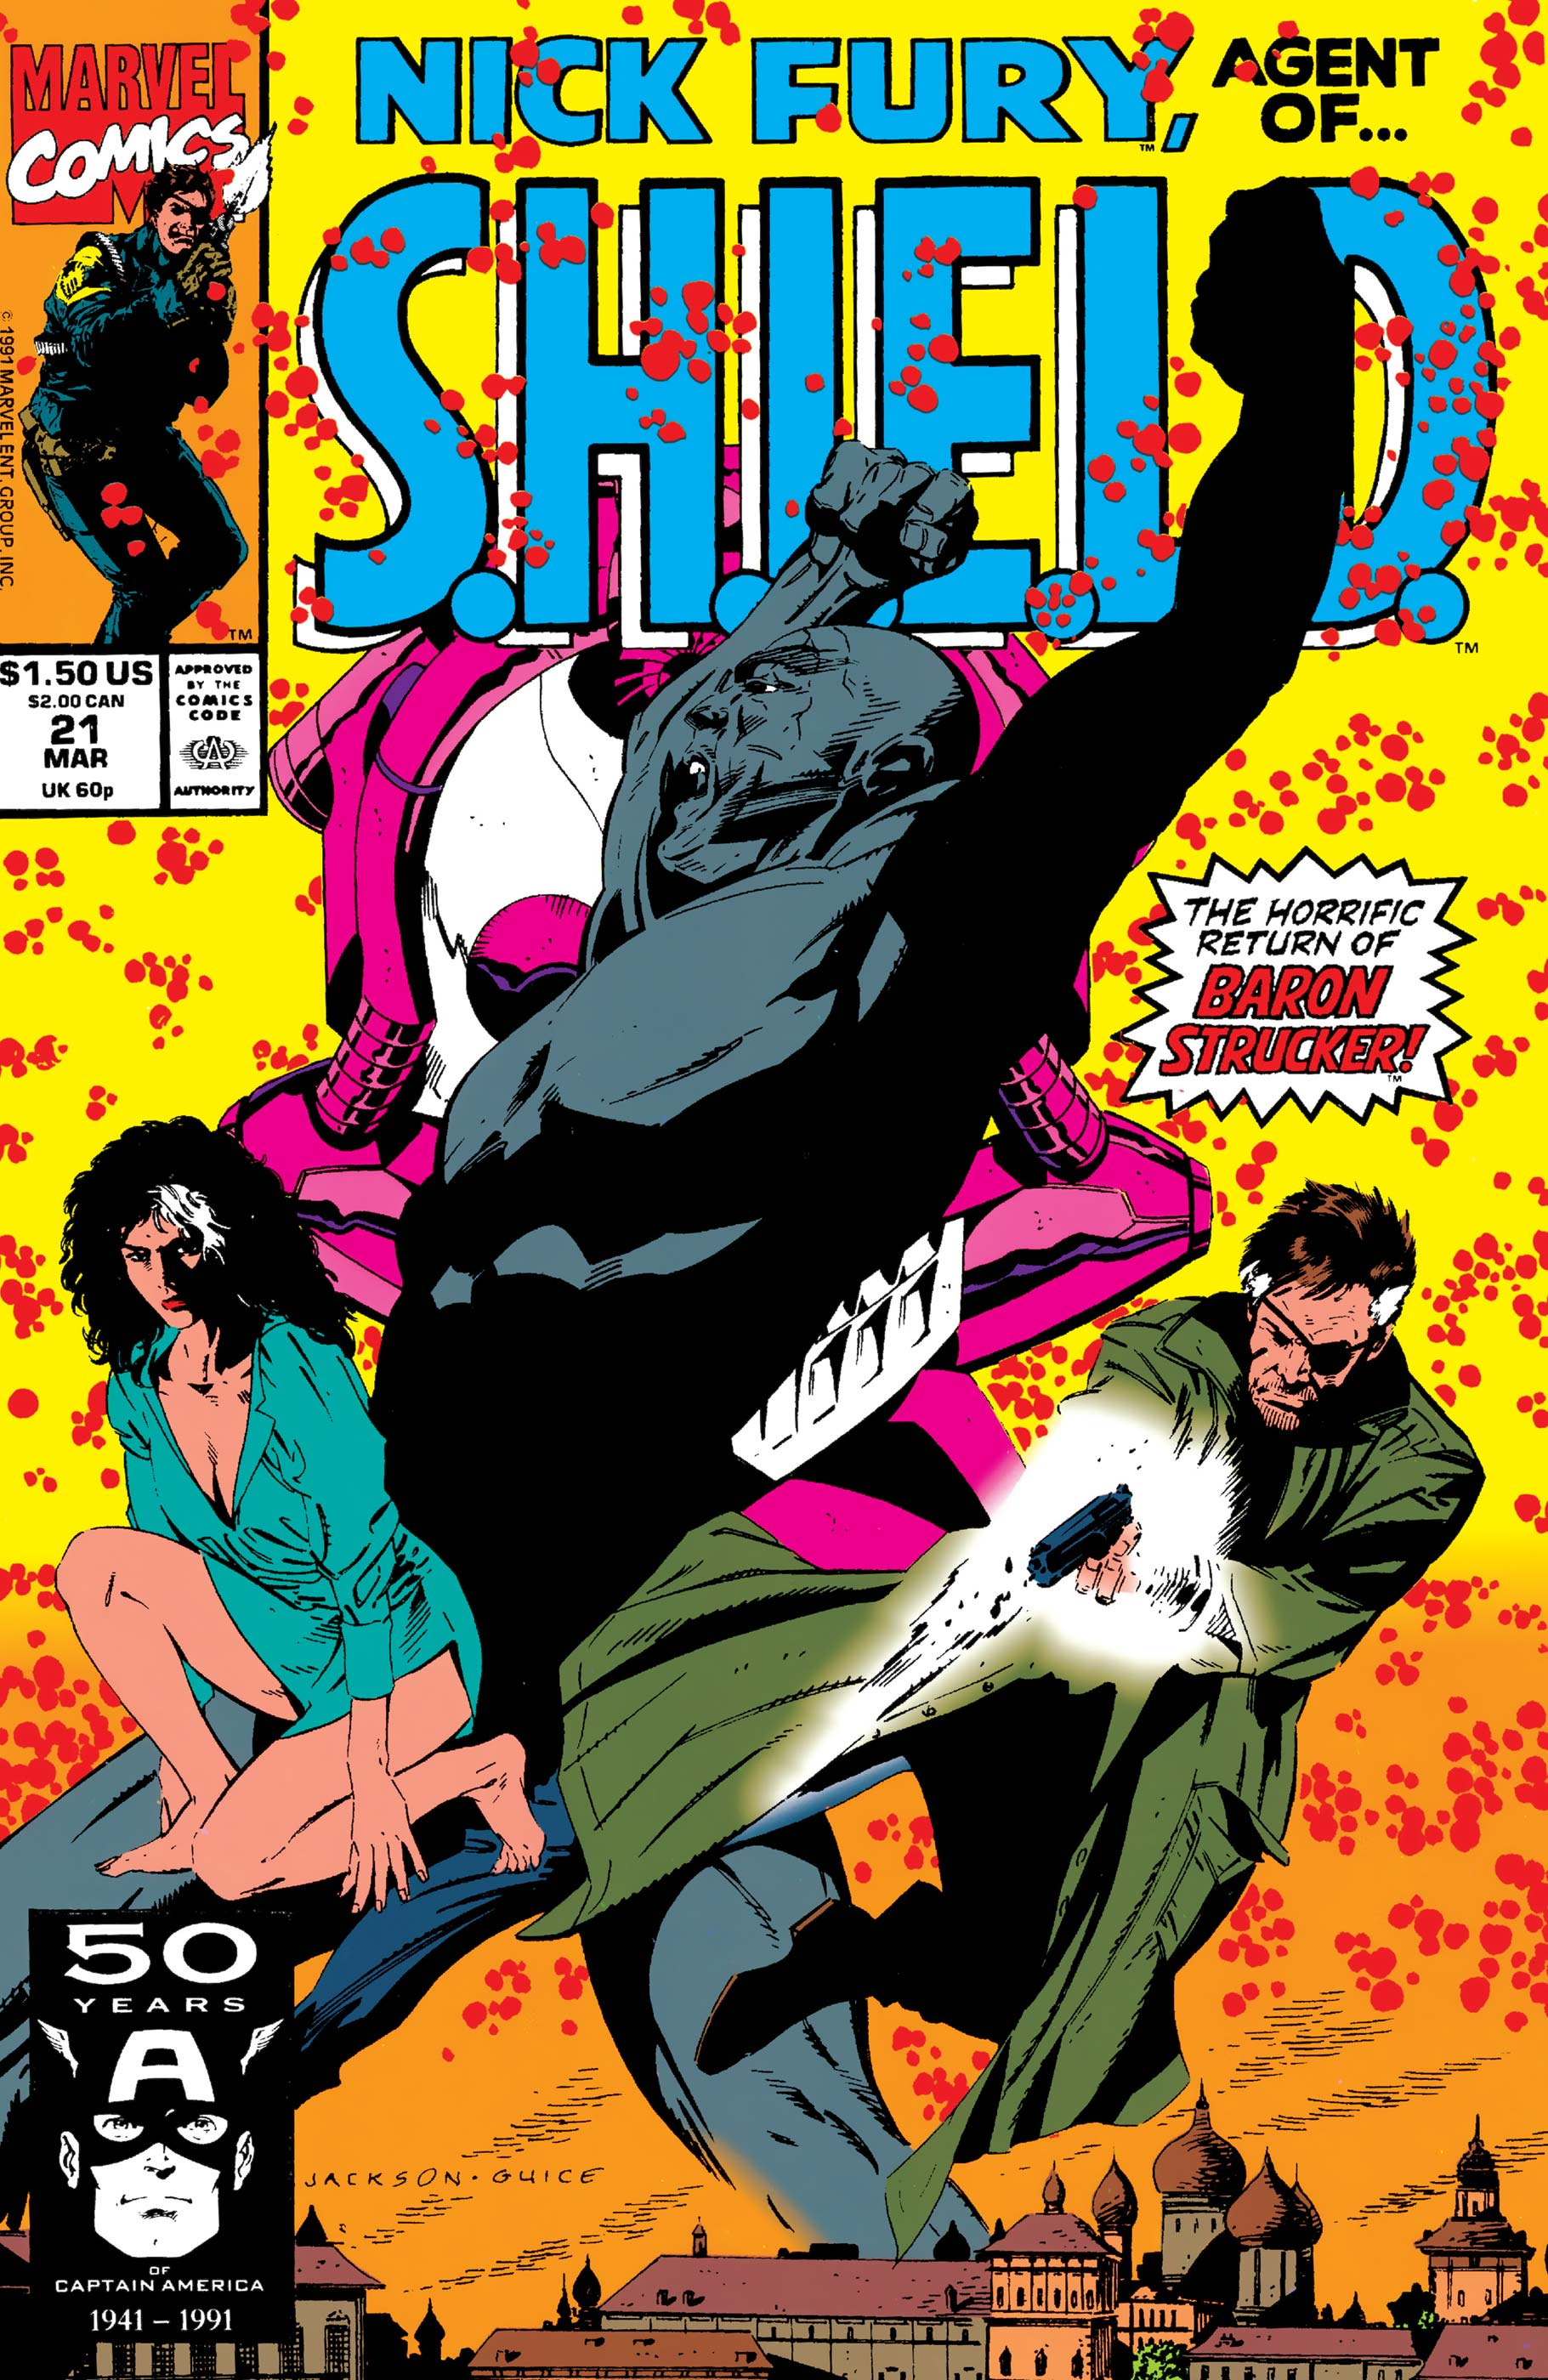 Nick Fury, Agent of S.H.I.E.L.D. (1989) #21